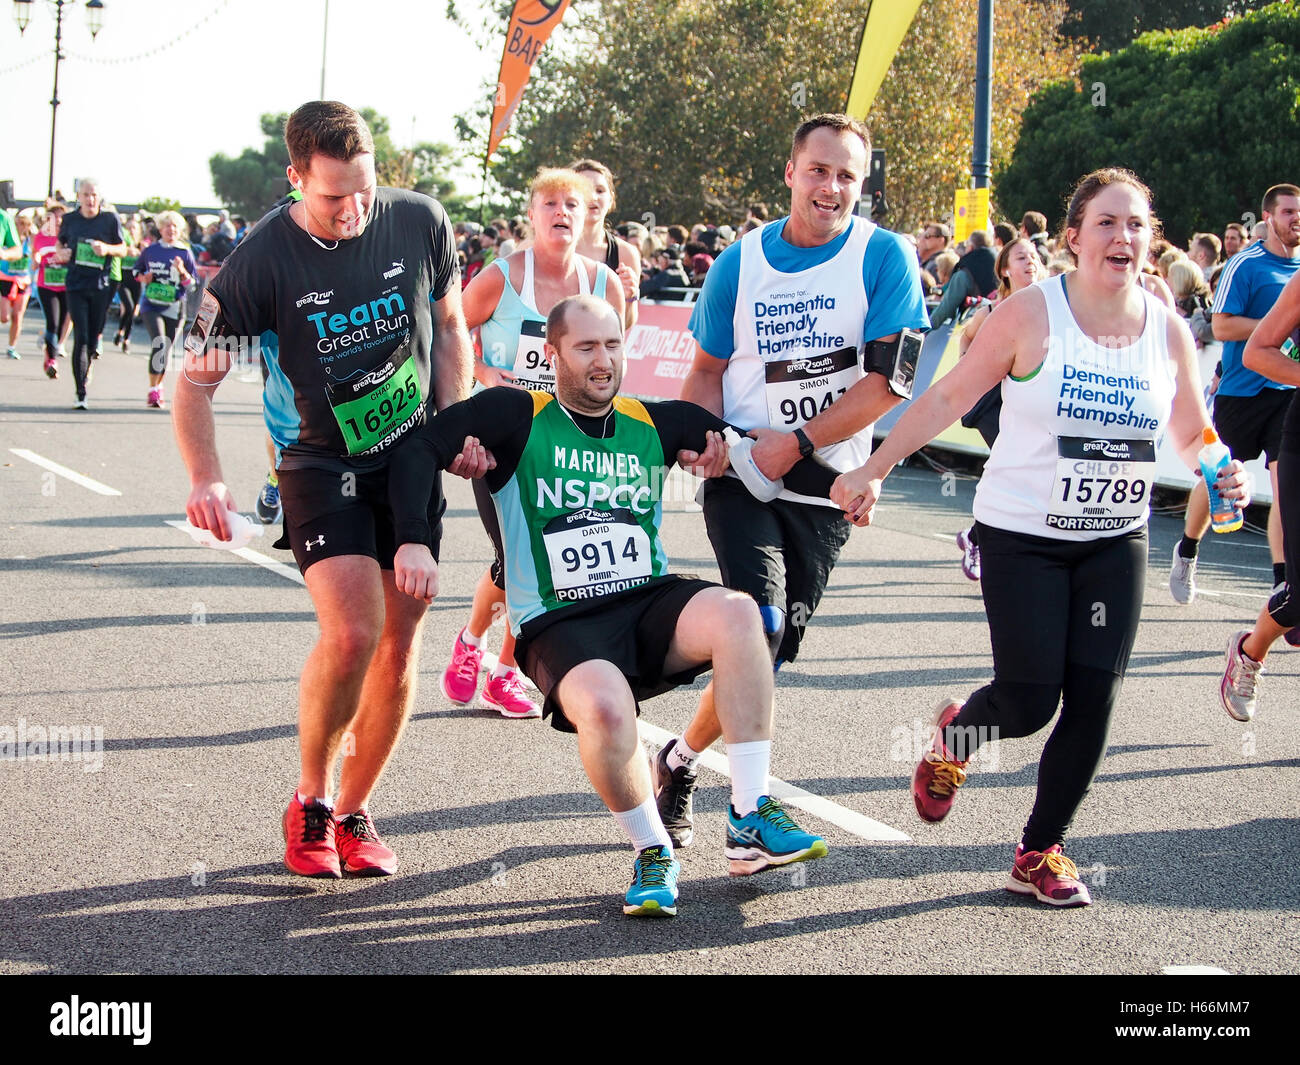 Marathon Finish Line Runner Exhausted Stock Photos Tired